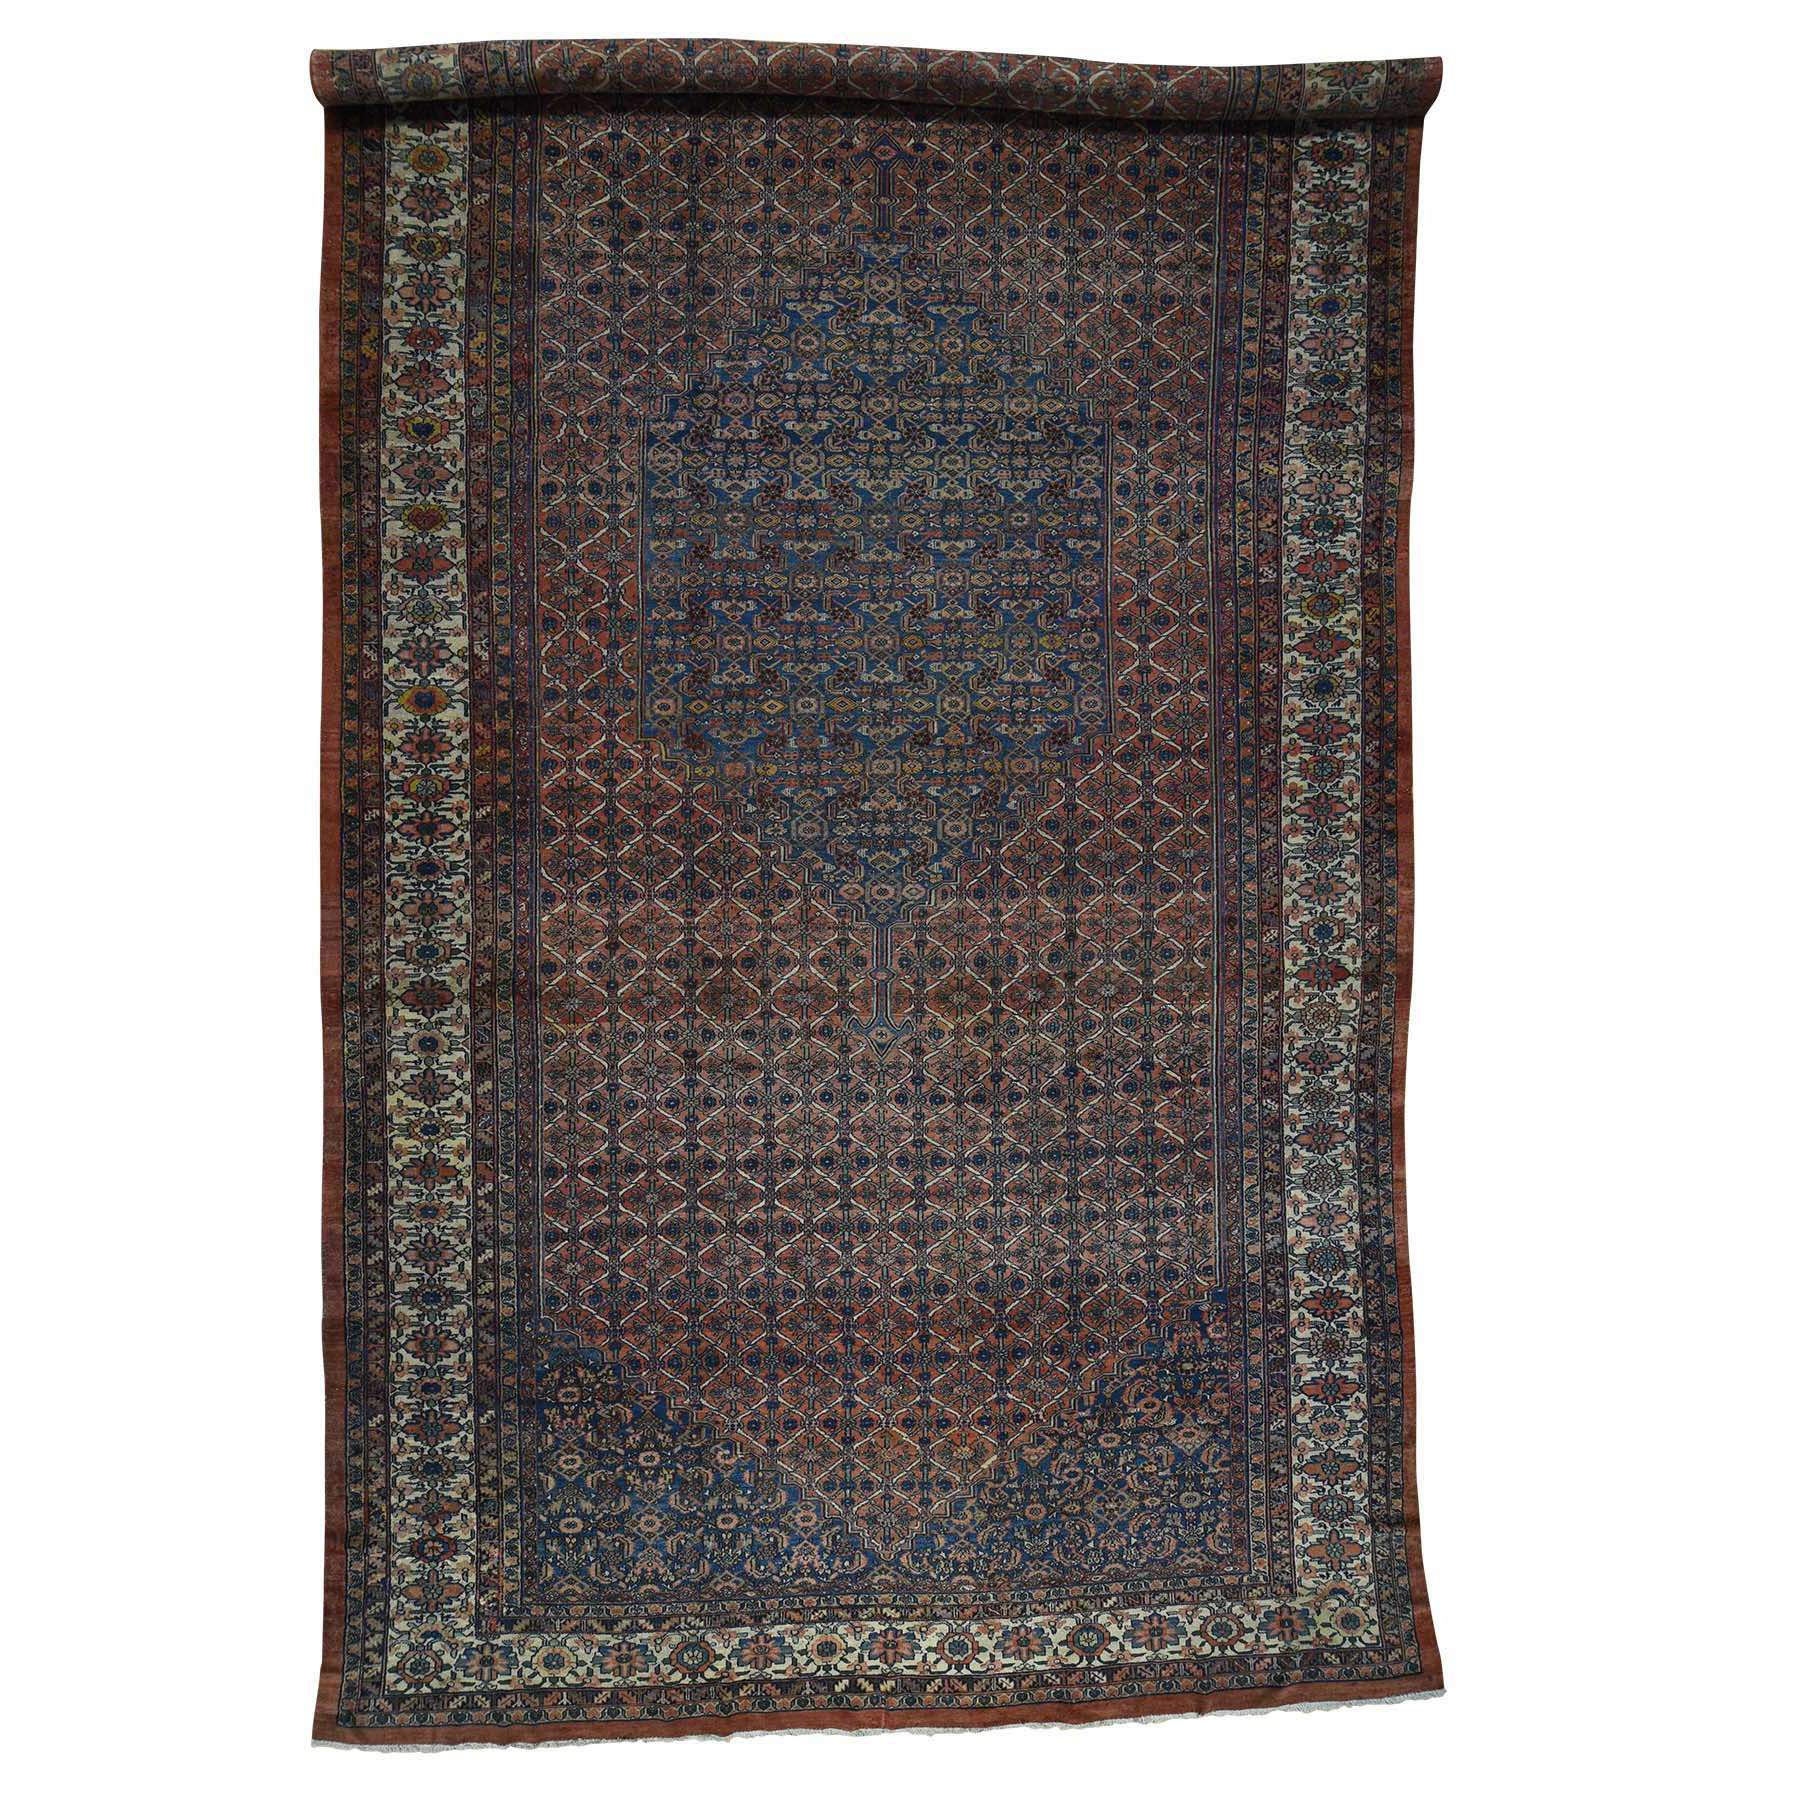 Antique Collection Hand Knotted Red Rug No: 171900